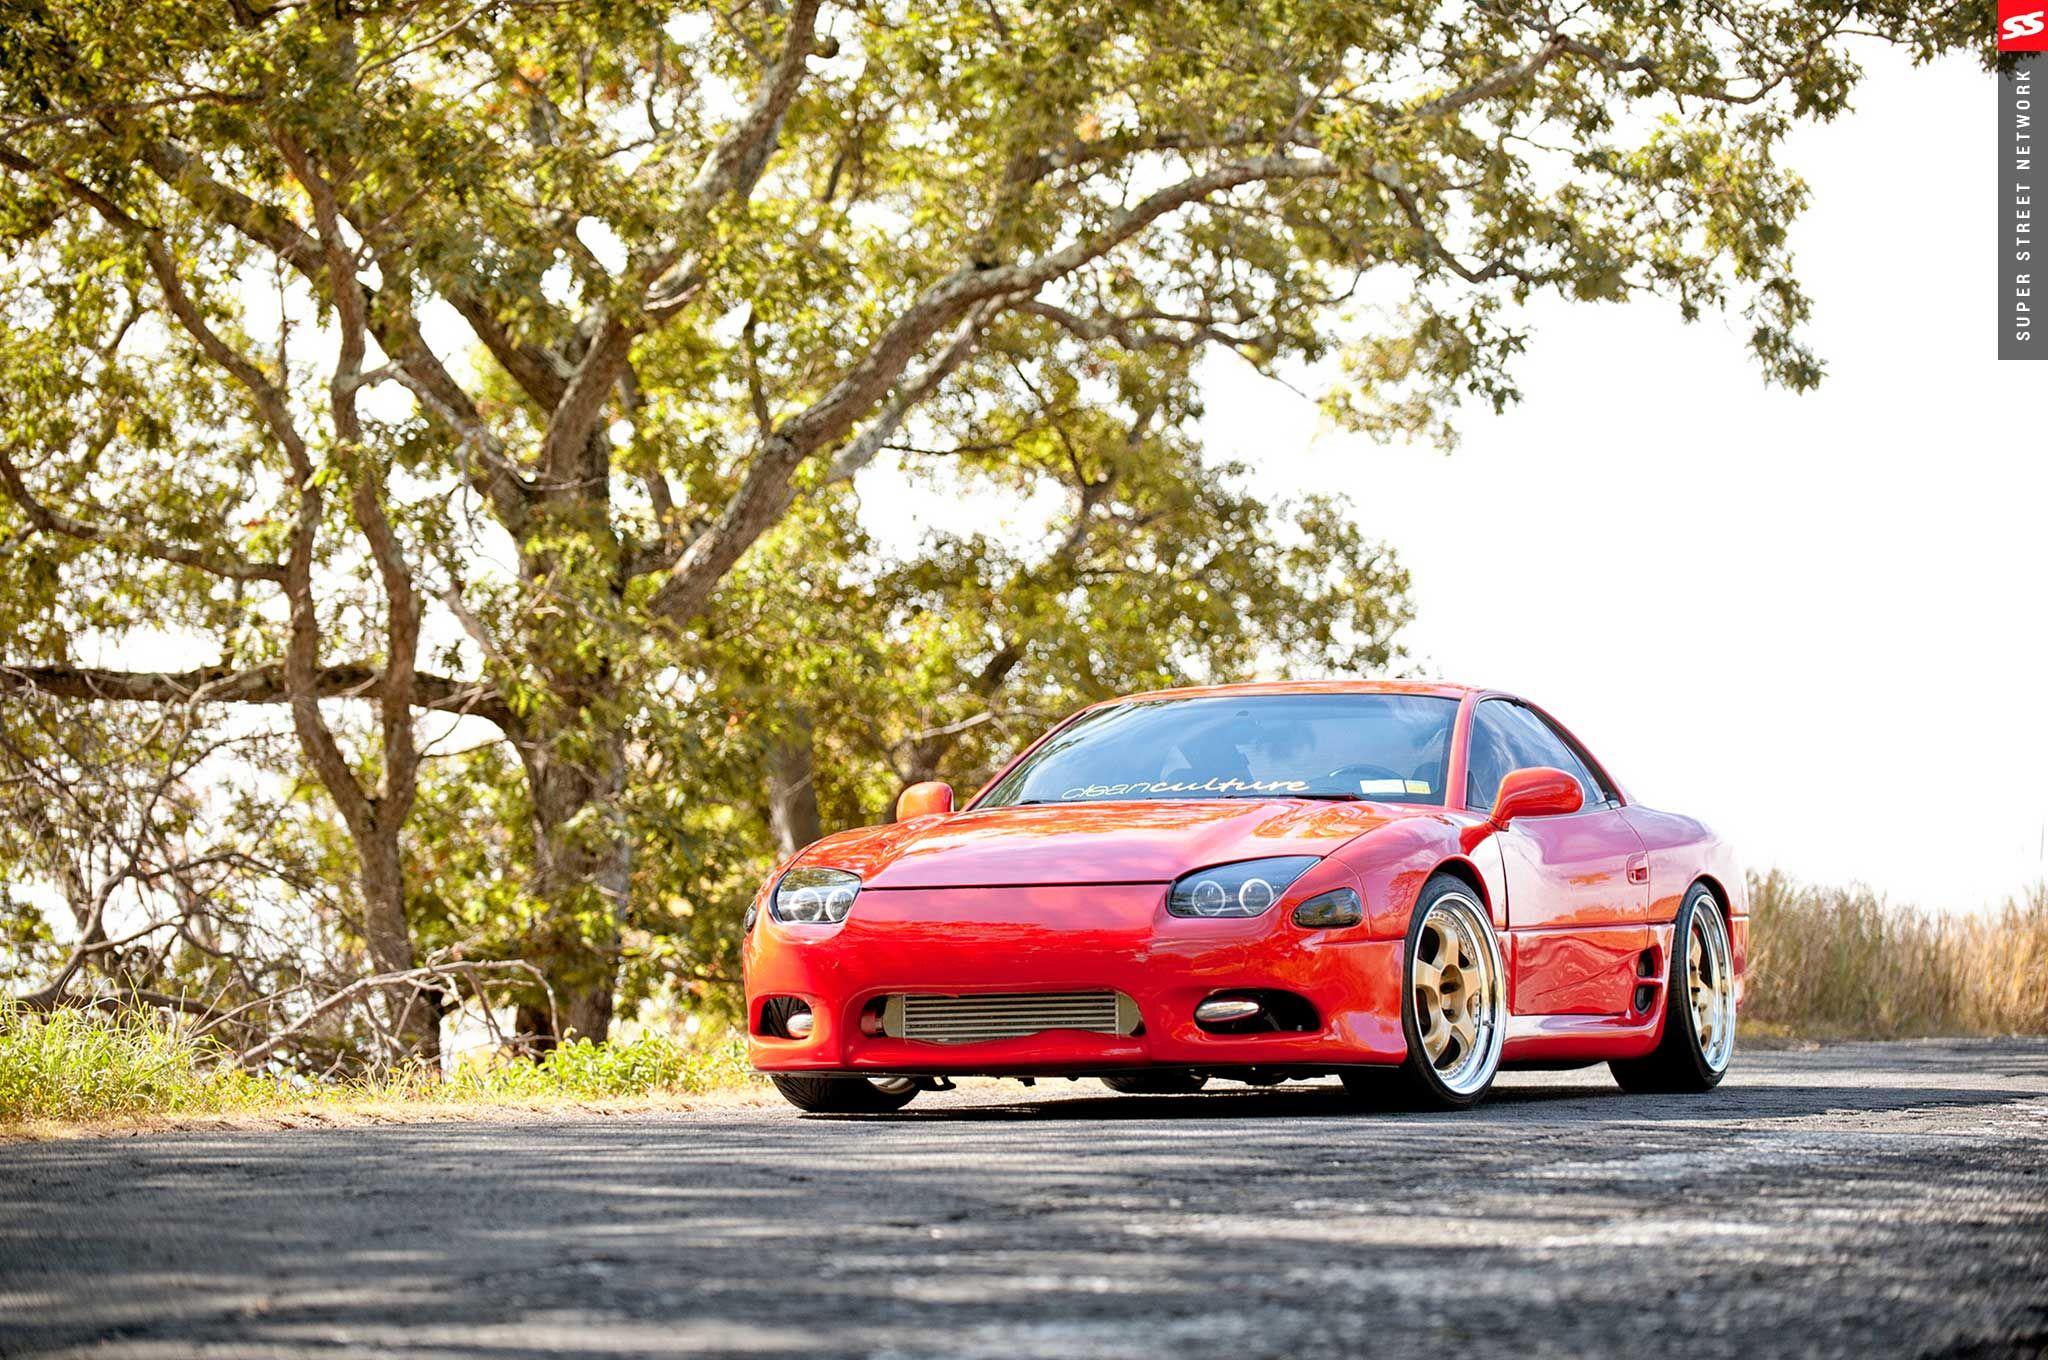 1997 Mitsubishi 3000gt Vr 4 With Work Meister Sp1s